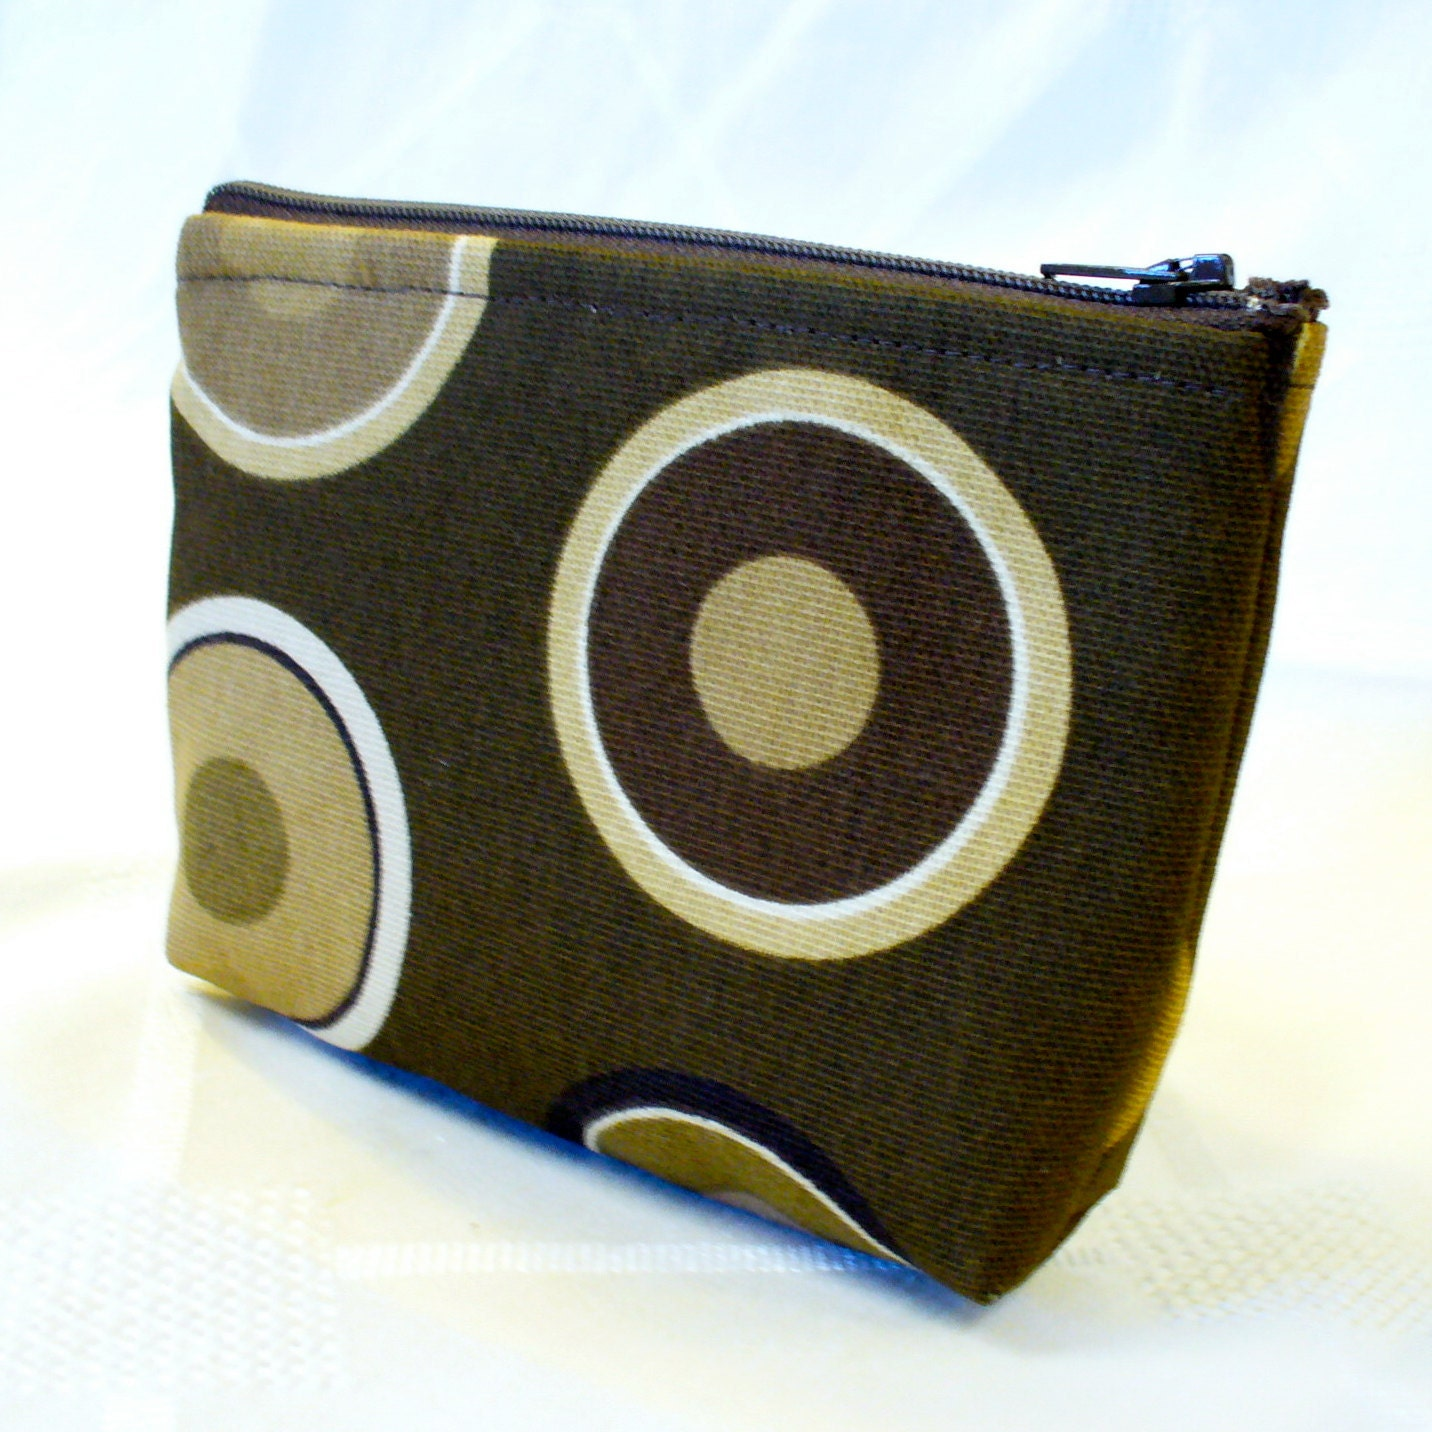 Bullseye Zipper Pouch Small Cosmetic Bag Make Up by